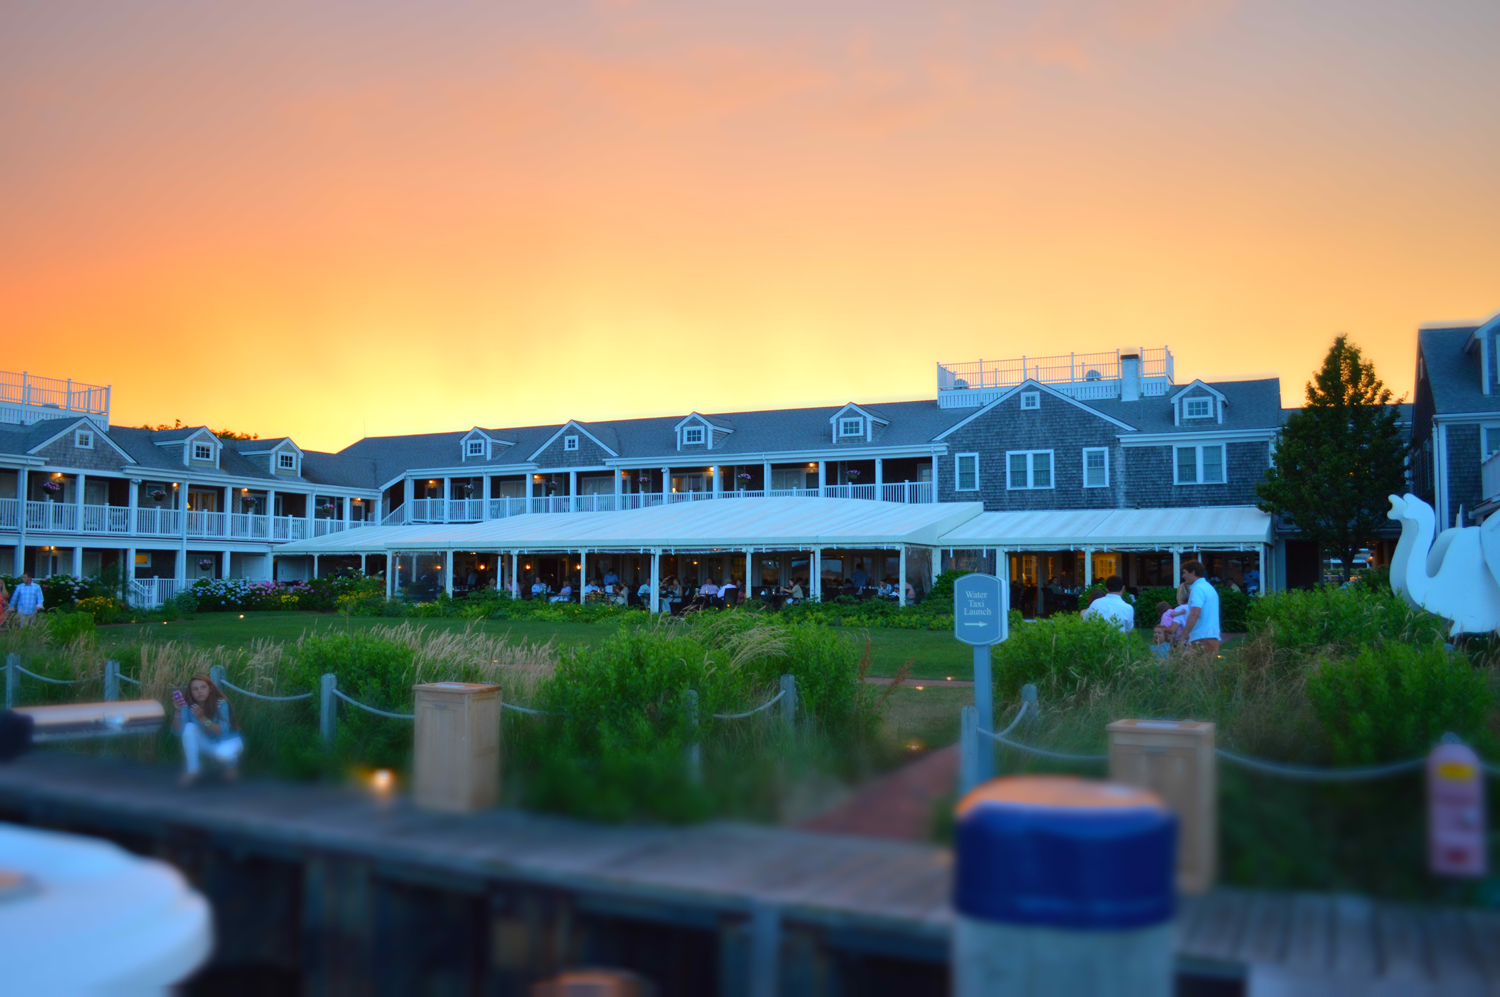 Stay at The White Elephant Hotel   Nantucket   Travel Insider